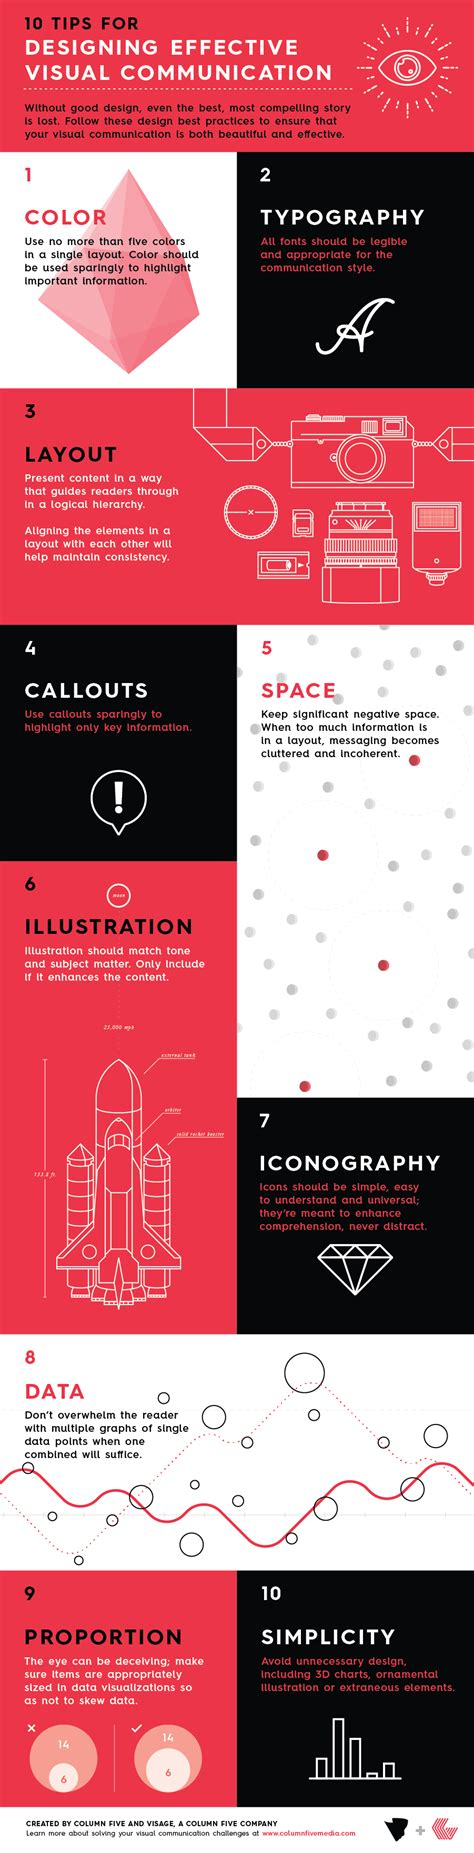 design process for visual communication designing effective visual communication tips